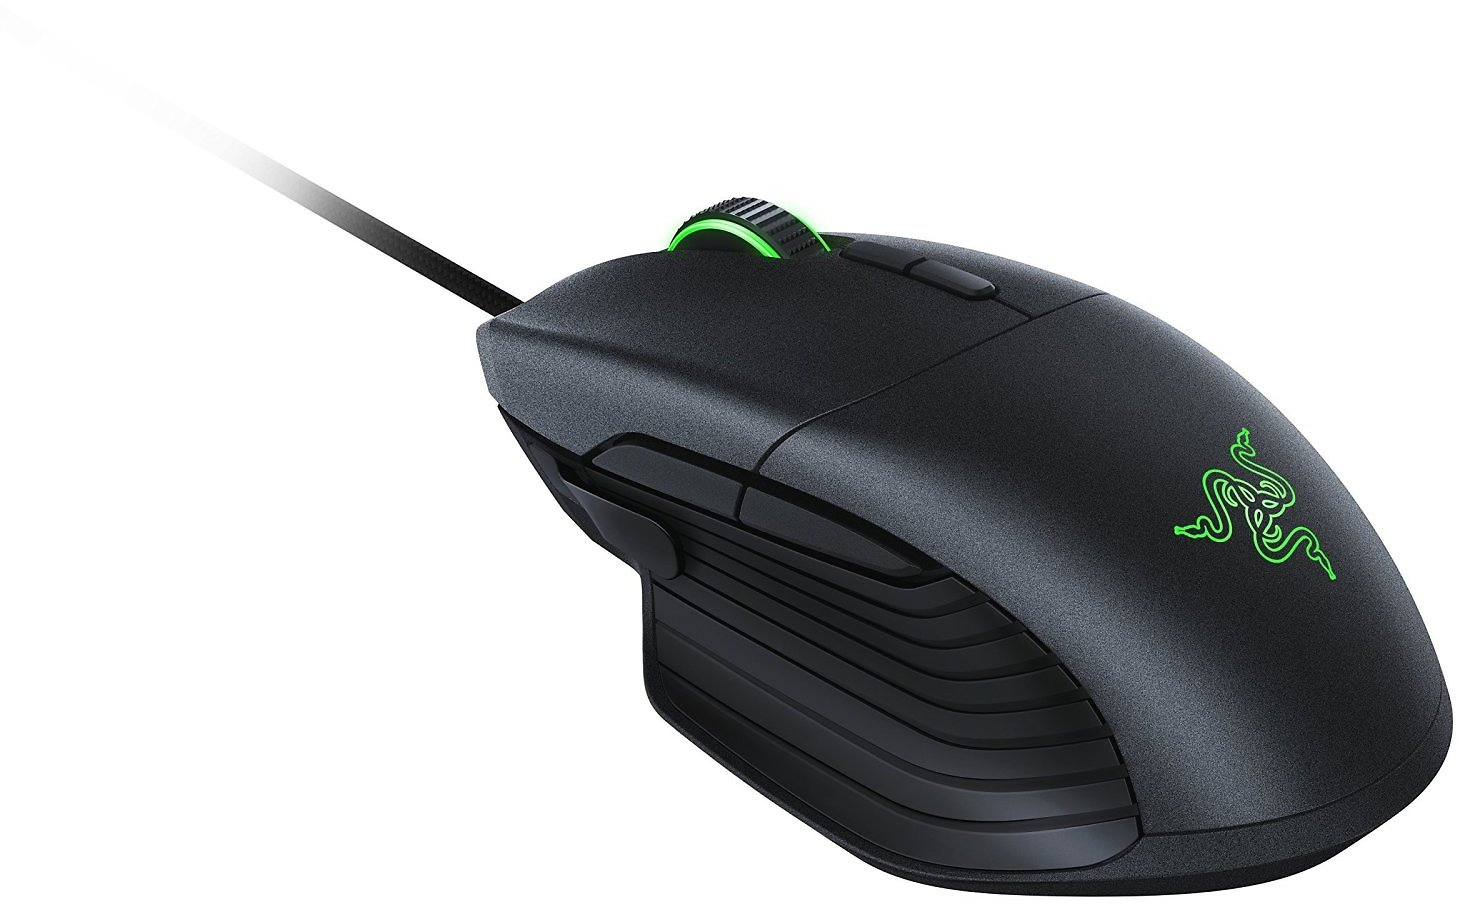 Razer Basilisk - Chroma Enabled RGB FPS Gaming Mouse